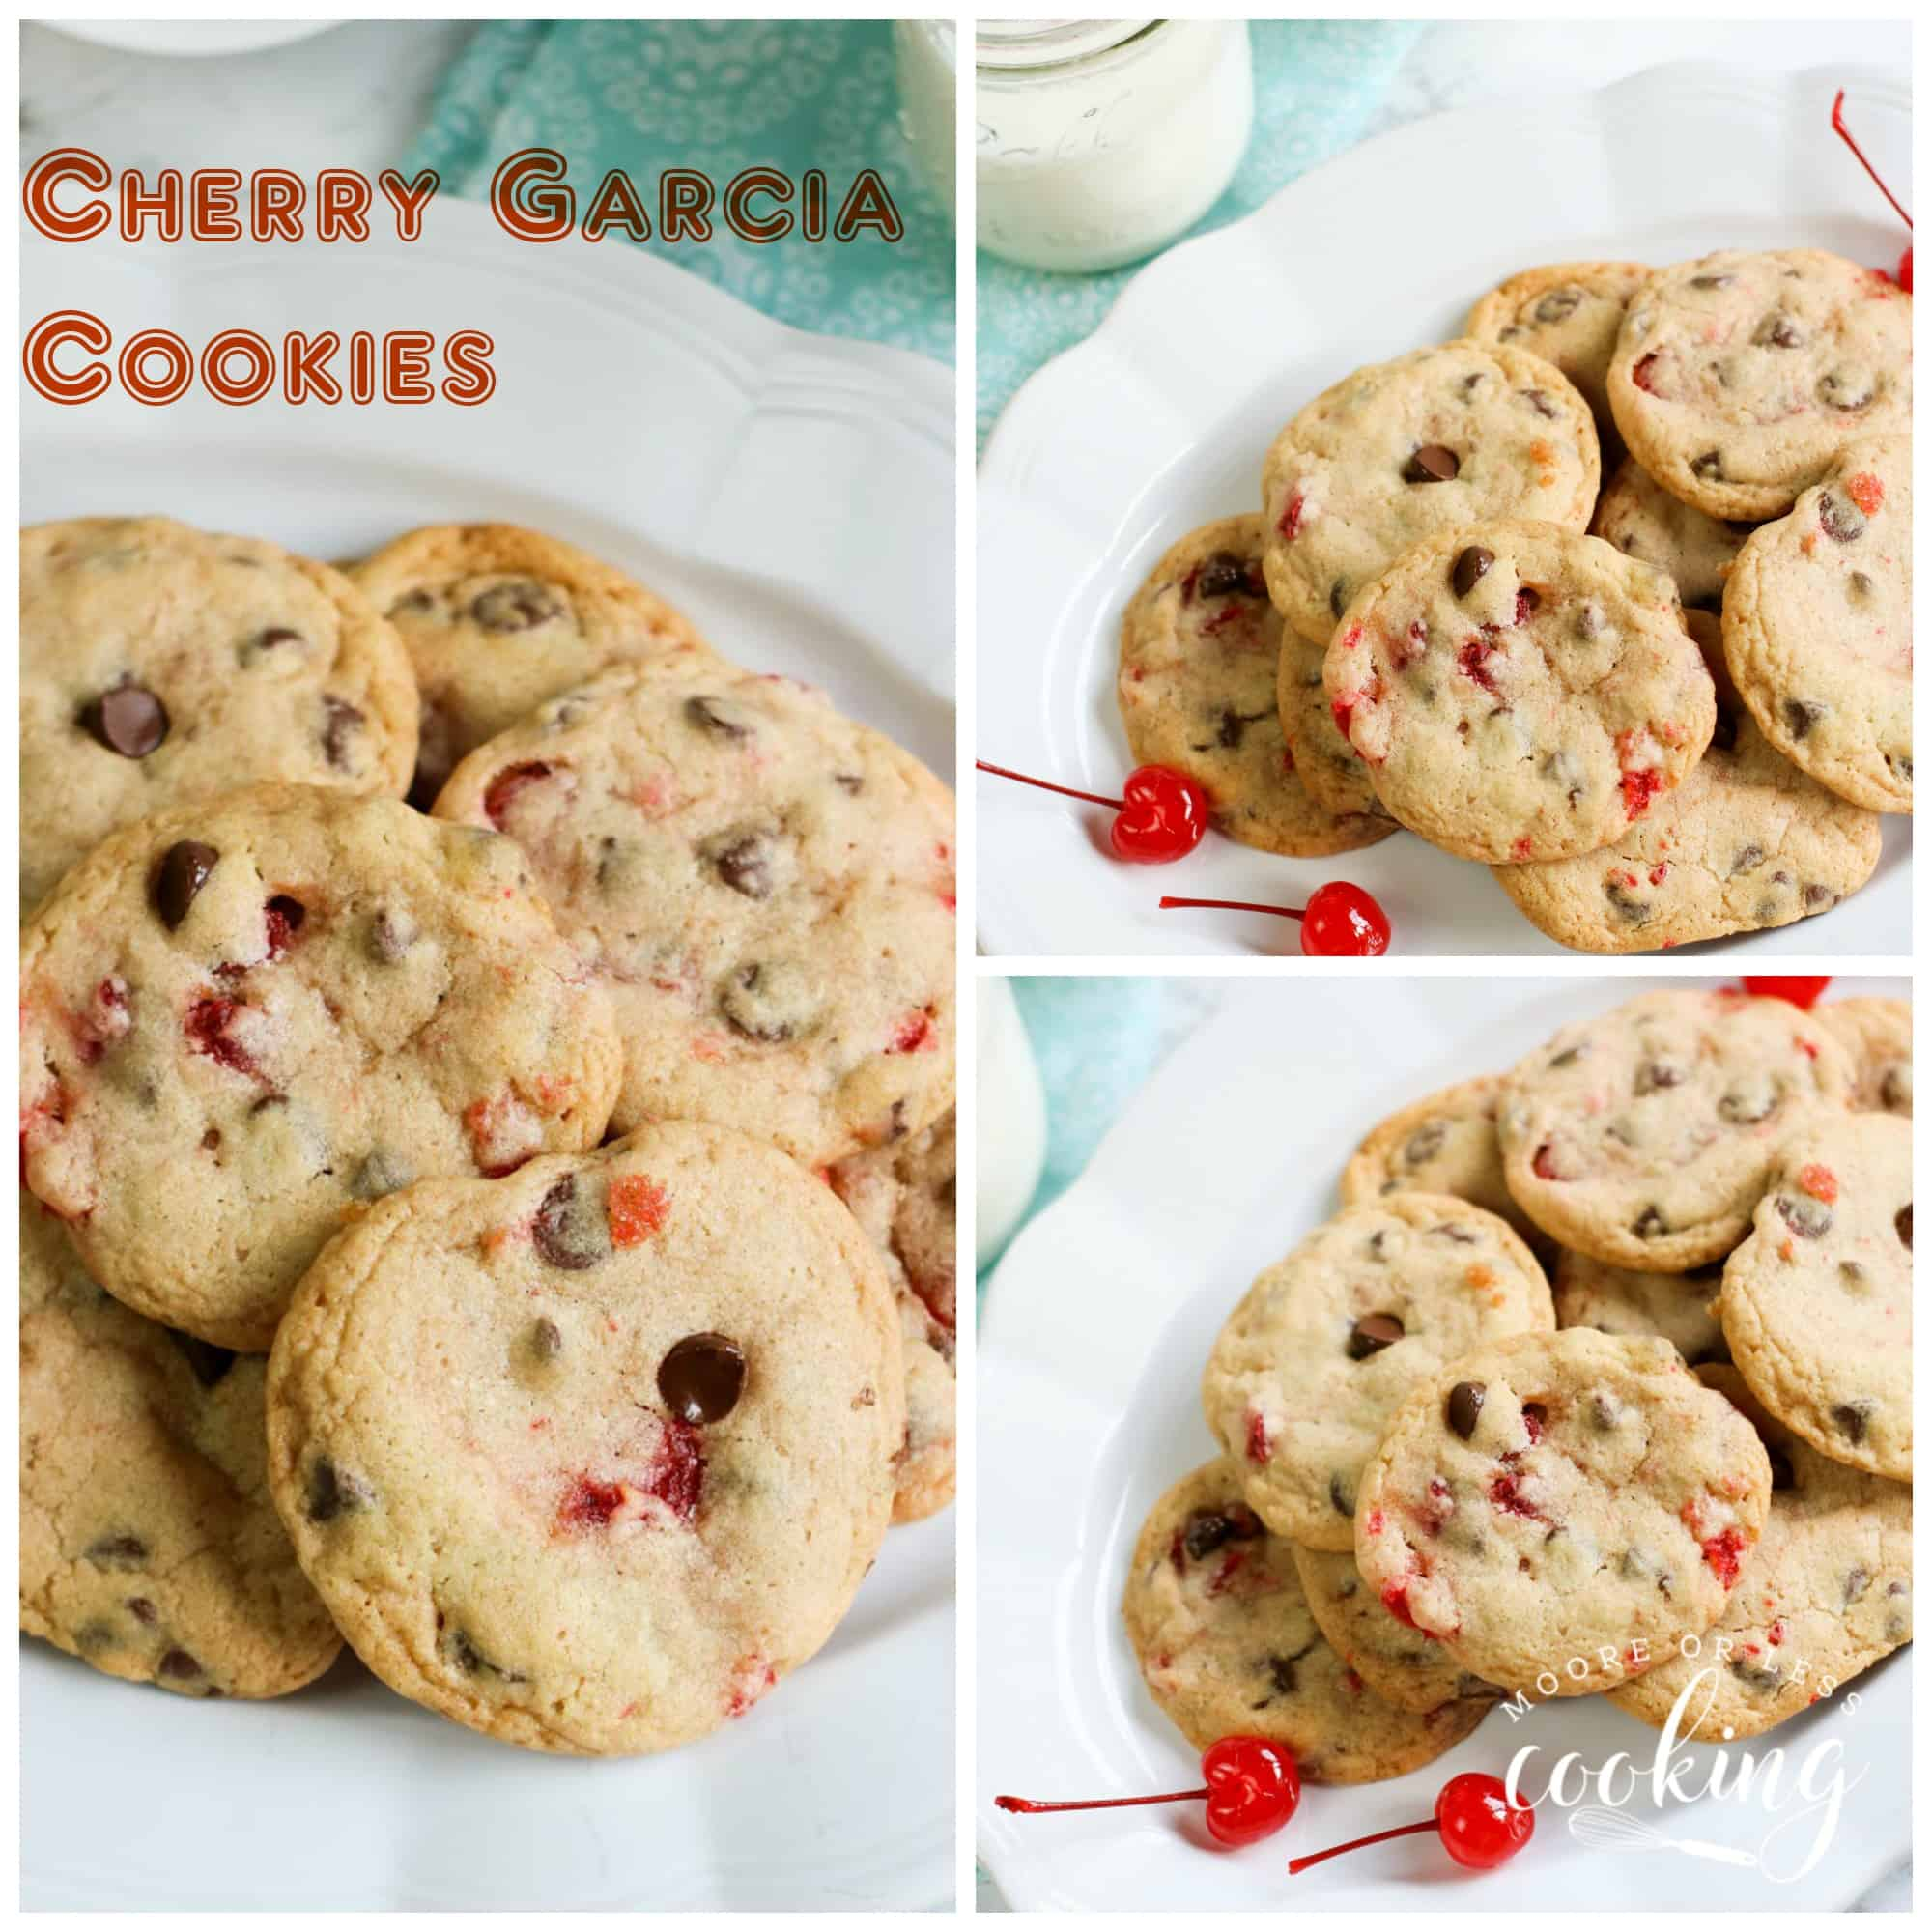 Best Cherry Garcia Cookies. These cookies are inspired by the famous ice cream that everyone loves, turned into perfectly soft yet chewy cookies that are perfect any time of day! via @Mooreorlesscook